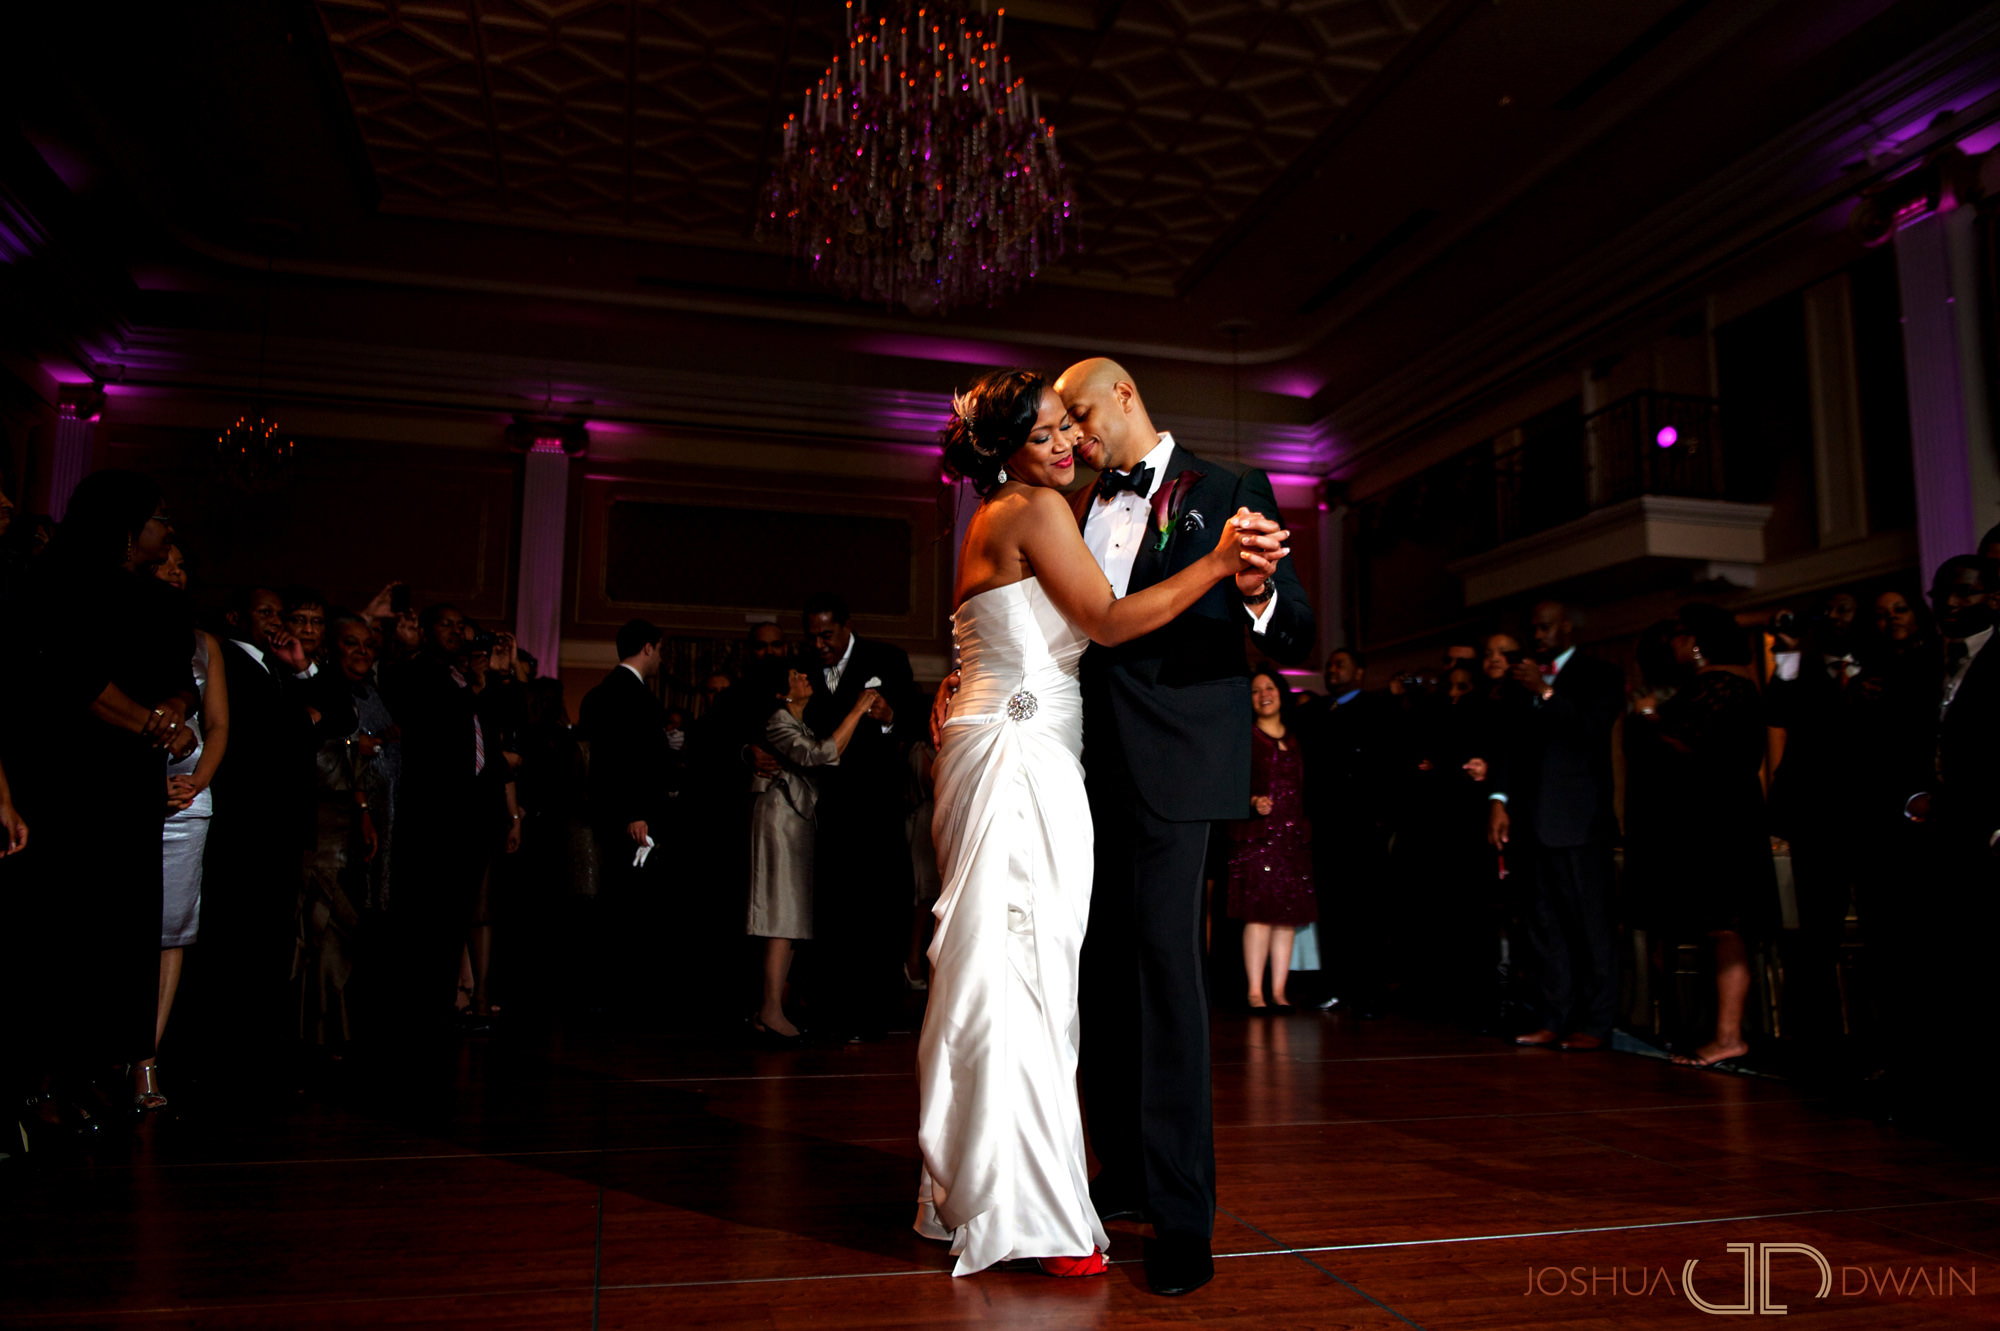 carol-shiloh-014-the-palace-somerset-new-jerseywedding-photographer-joshua-dwain-2011-11-25_cs_615